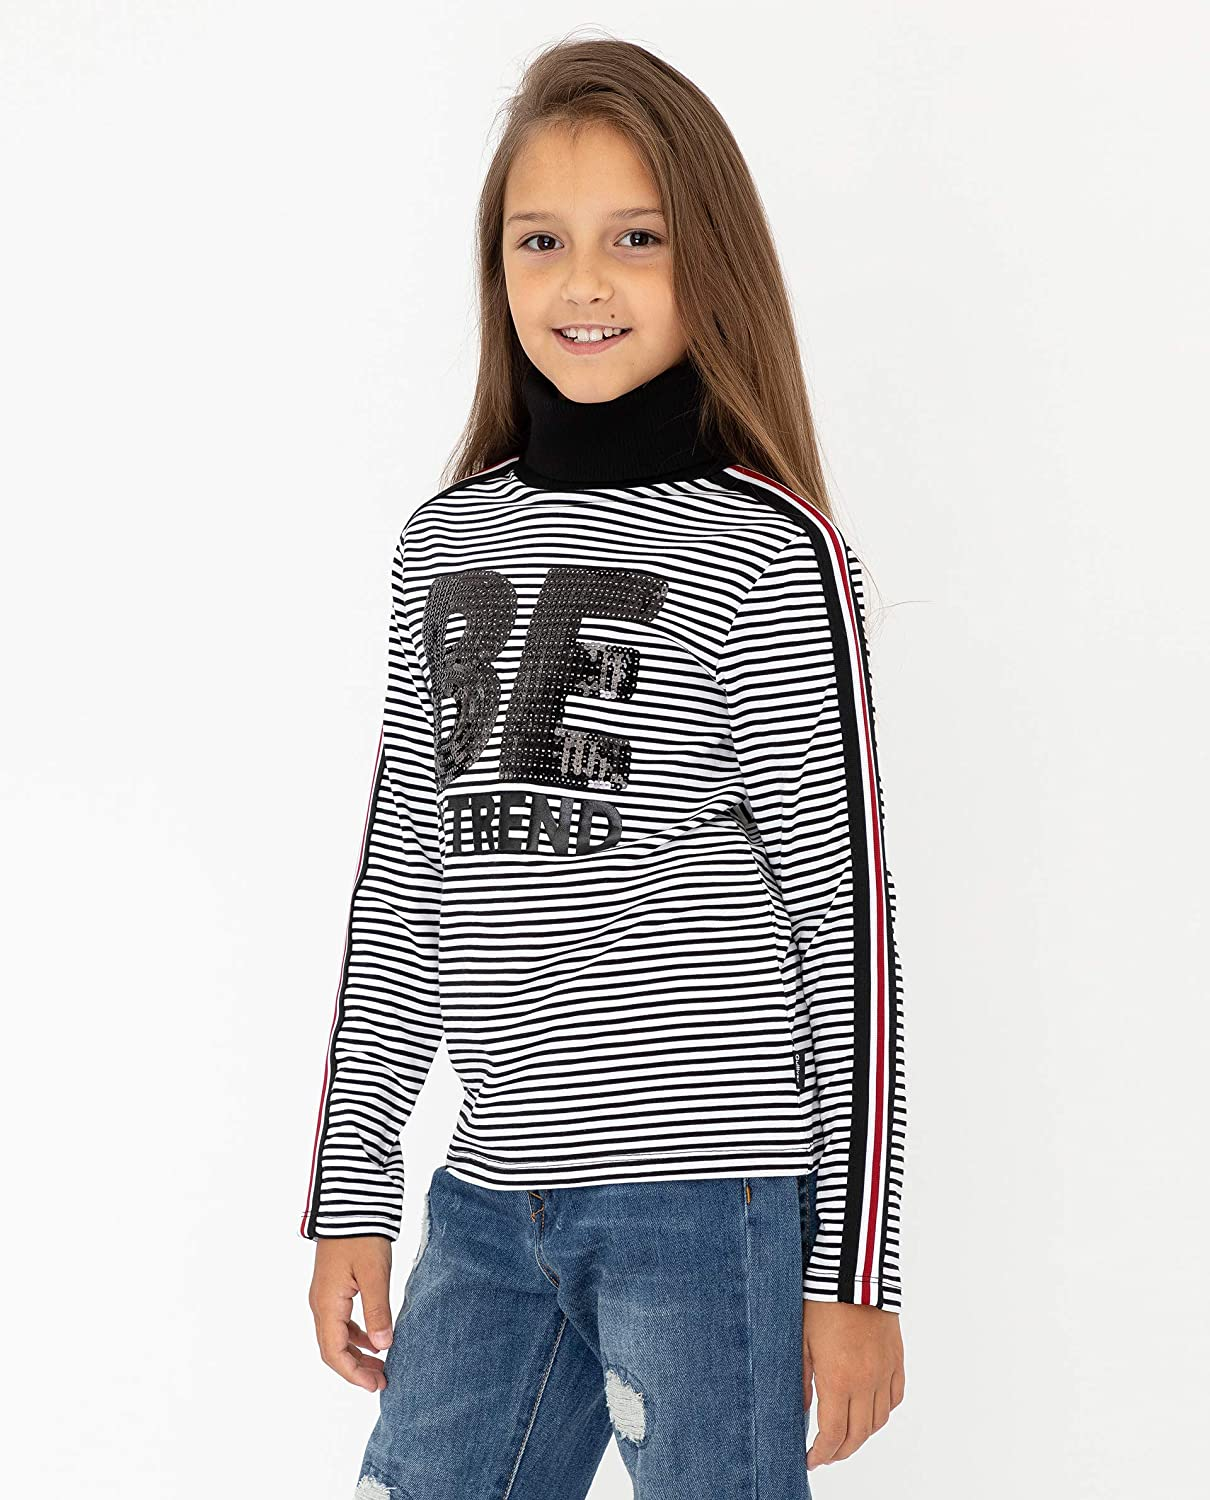 Colour White Black Round Polo-Neck Casual Cotton Soft GULLIVER Teen Girl Long Sleeve Top Turtleneck Shirt T-Shirt Stripe Print Sequins Side Stripes| Regular Fit for 11-14 Years